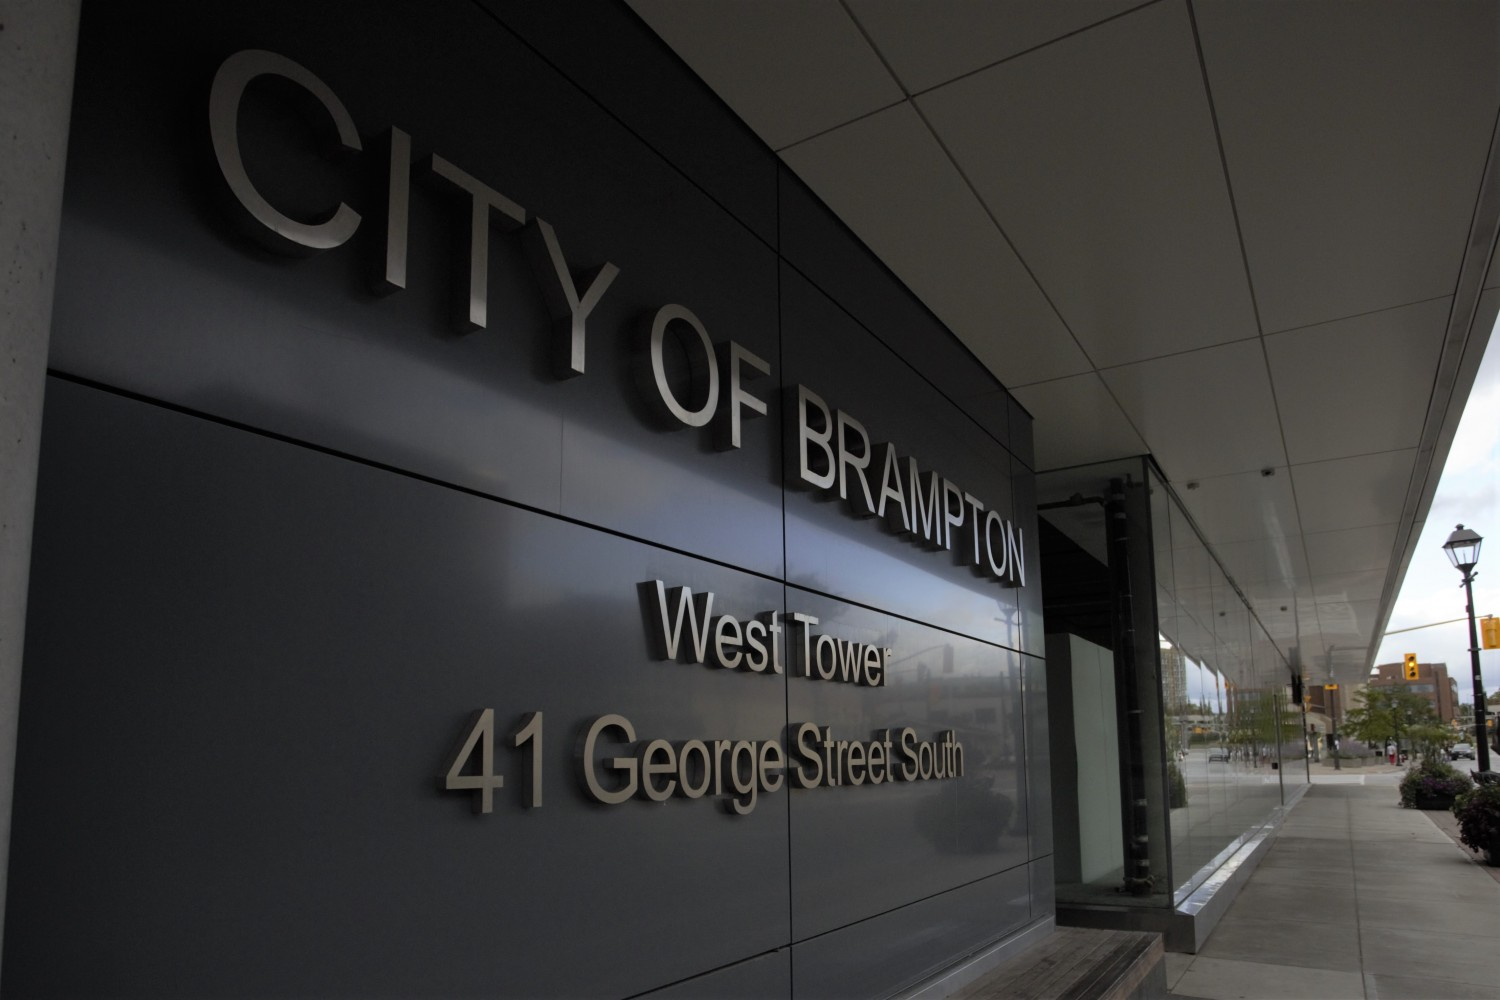 KPMG report paints rosy picture of Brampton finances, finds $9 million in potential savings